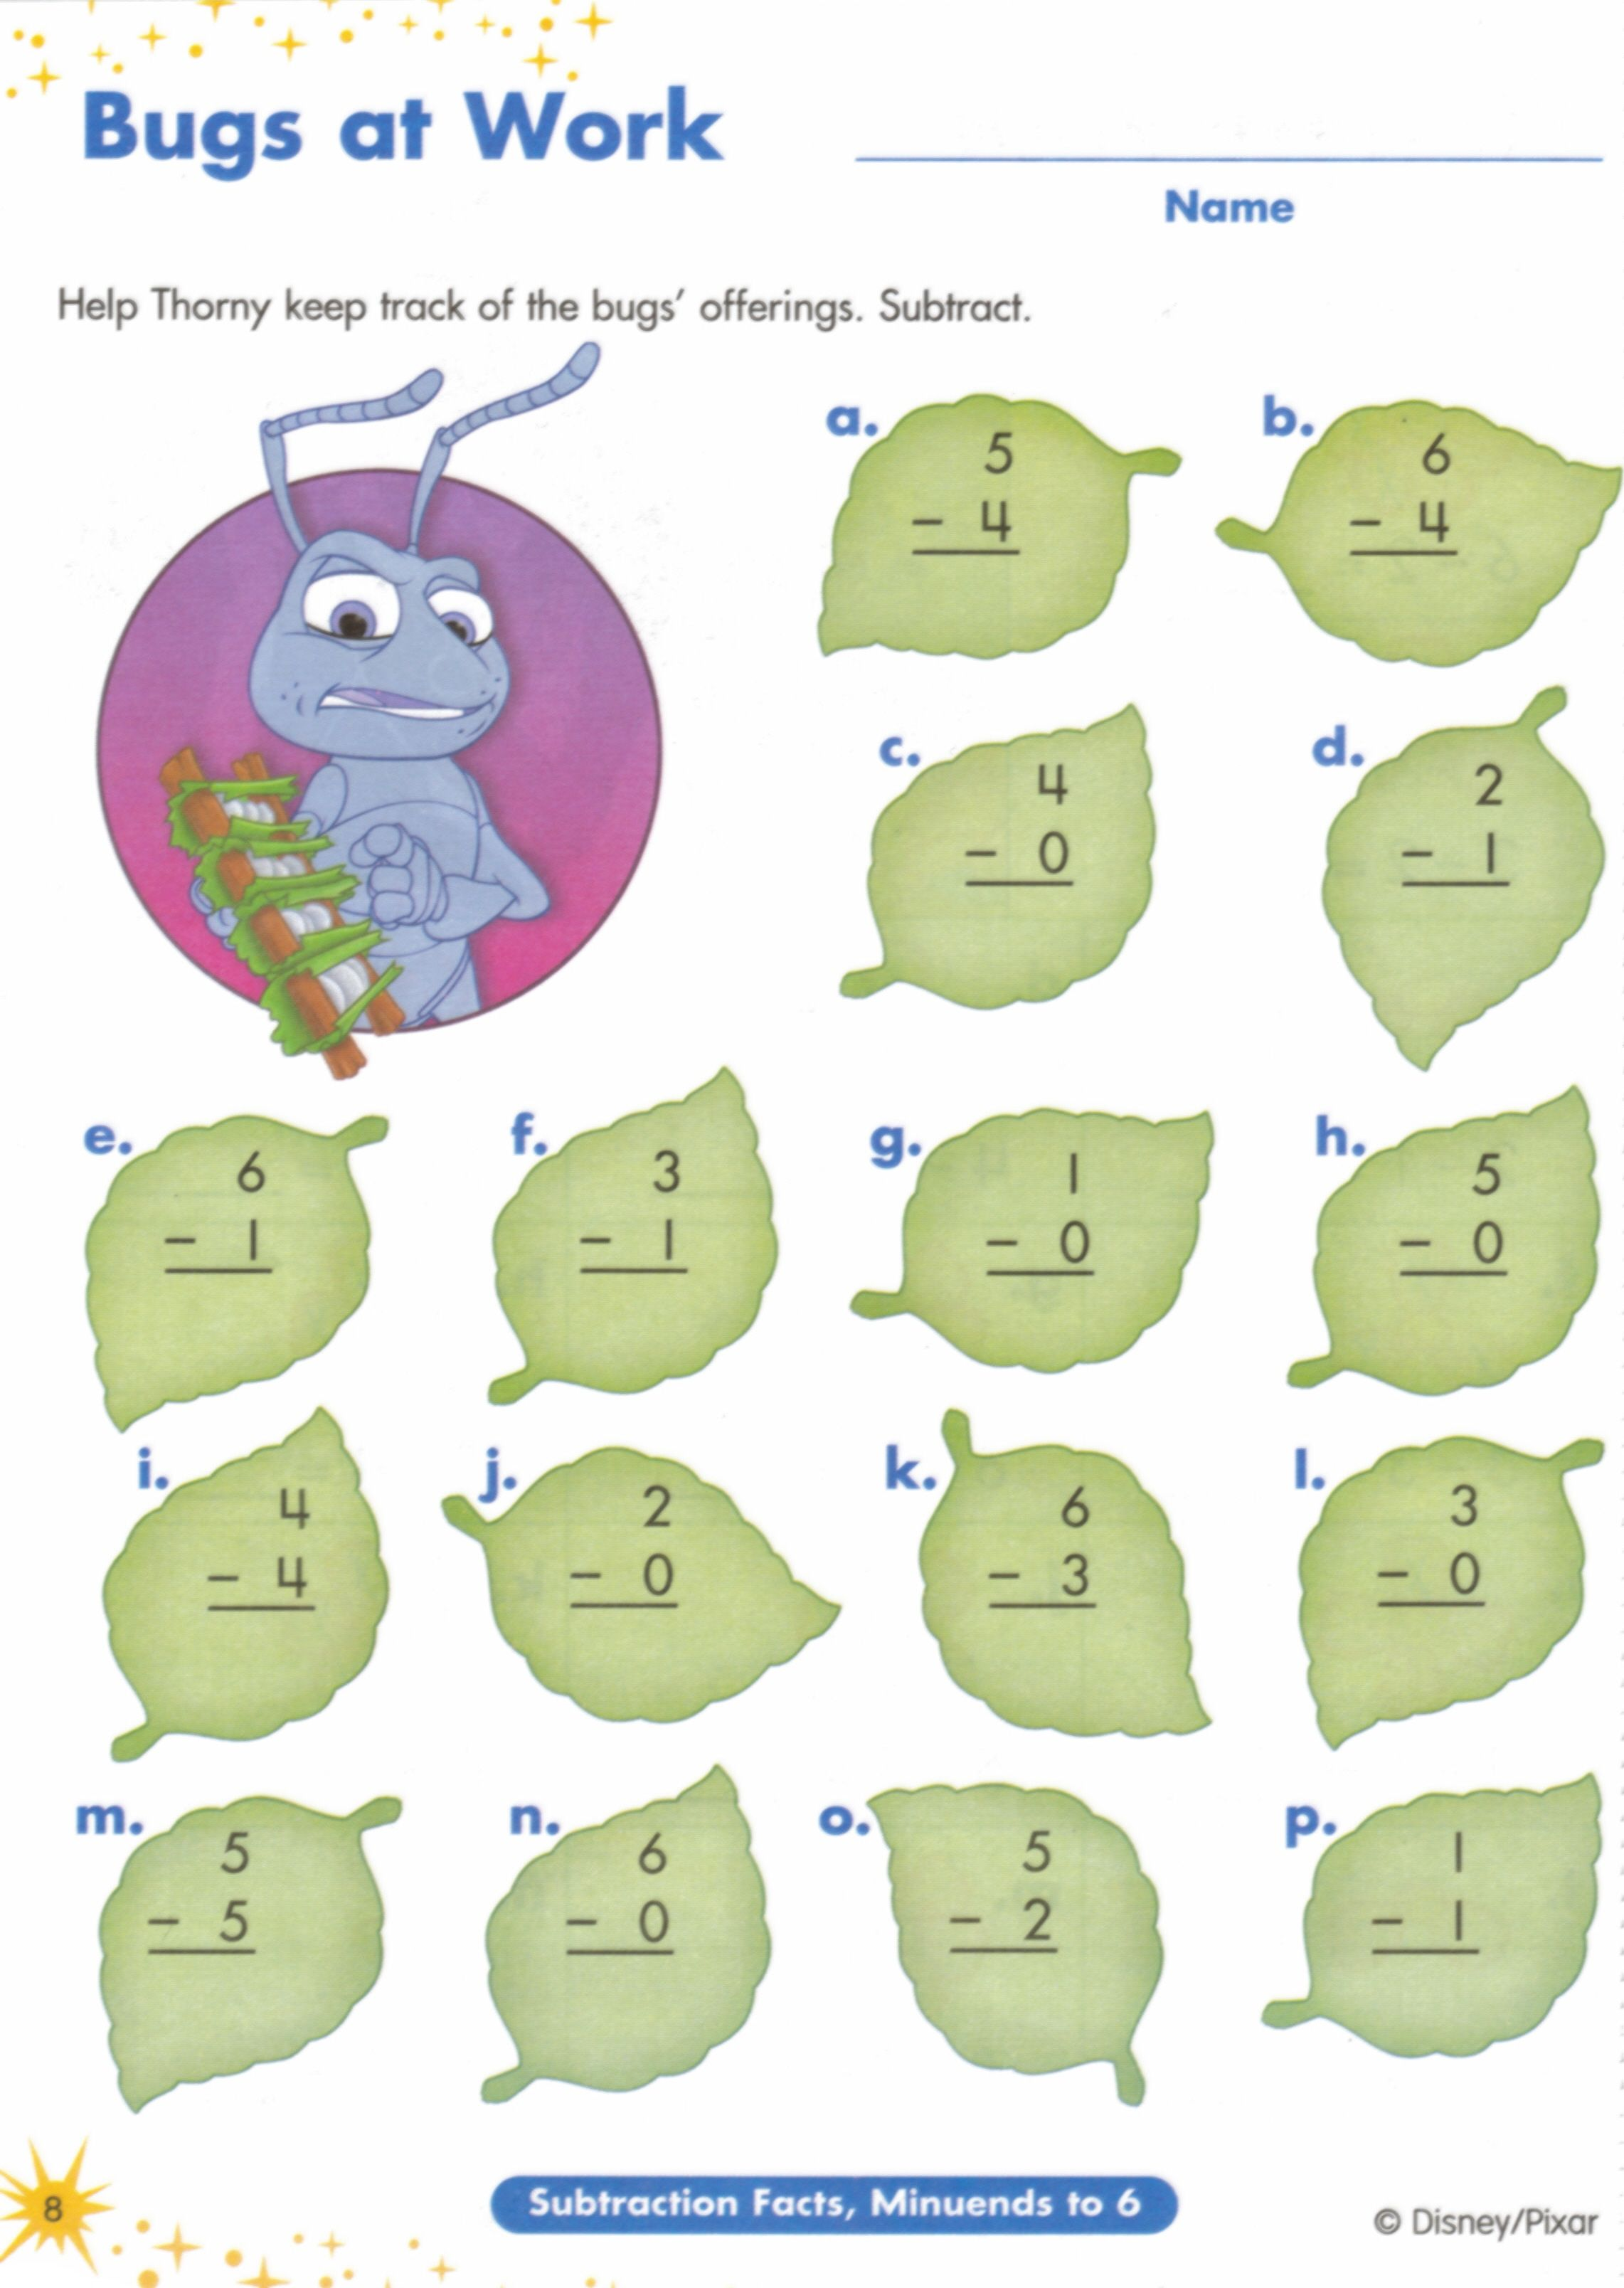 Weirdmailus  Prepossessing  Images About Worksheets On Pinterest  Fun Facts For Kids  With Lovely  Images About Worksheets On Pinterest  Fun Facts For Kids Earth Day Worksheets And Jungles With Cute Counting Worksheet For Kindergarten Also Positive Negative Numbers Worksheet In Addition Transport Requiring Energy Worksheet And Base Ten Worksheets Nd Grade As Well As Worksheets Multiplying Fractions Additionally Algebra Th Grade Worksheets From Pinterestcom With Weirdmailus  Lovely  Images About Worksheets On Pinterest  Fun Facts For Kids  With Cute  Images About Worksheets On Pinterest  Fun Facts For Kids Earth Day Worksheets And Jungles And Prepossessing Counting Worksheet For Kindergarten Also Positive Negative Numbers Worksheet In Addition Transport Requiring Energy Worksheet From Pinterestcom